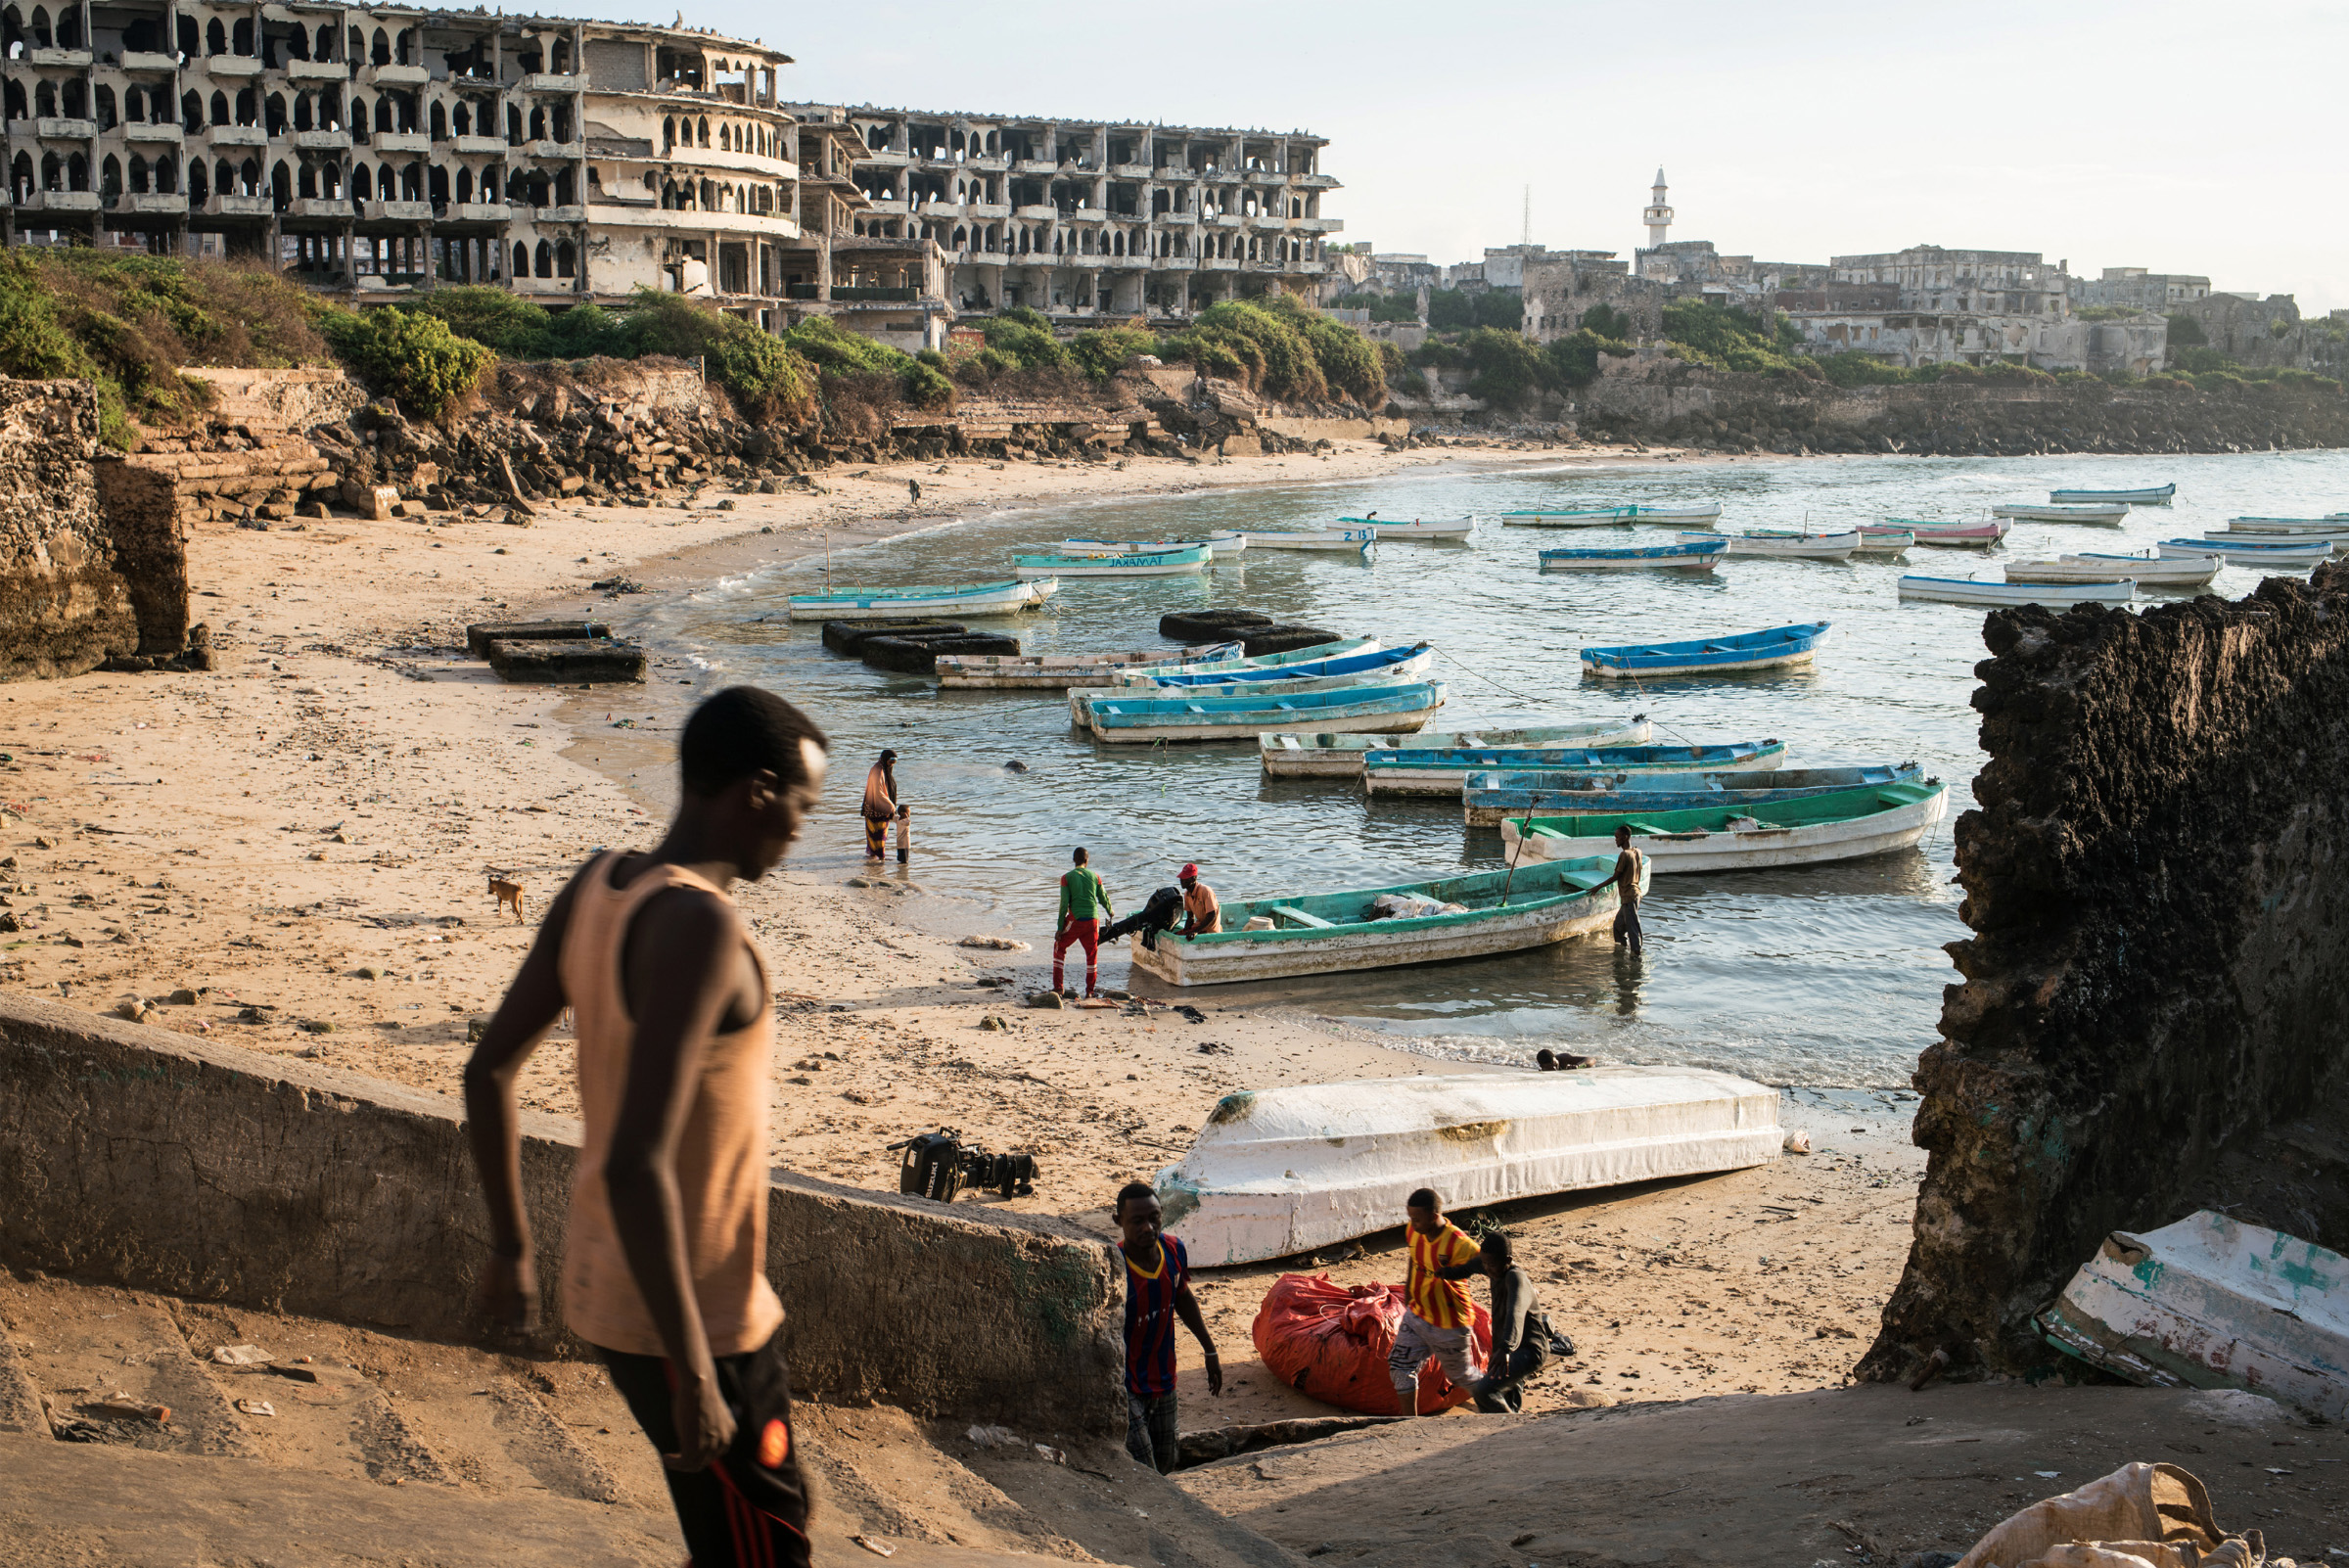 Boats gather at dawn in the old port in Mogadishu, the Somali capital, as fishermen land their catch and ready it for transport to the city's fish market. (Photo by Nichole Sobecki/GroundTruth)